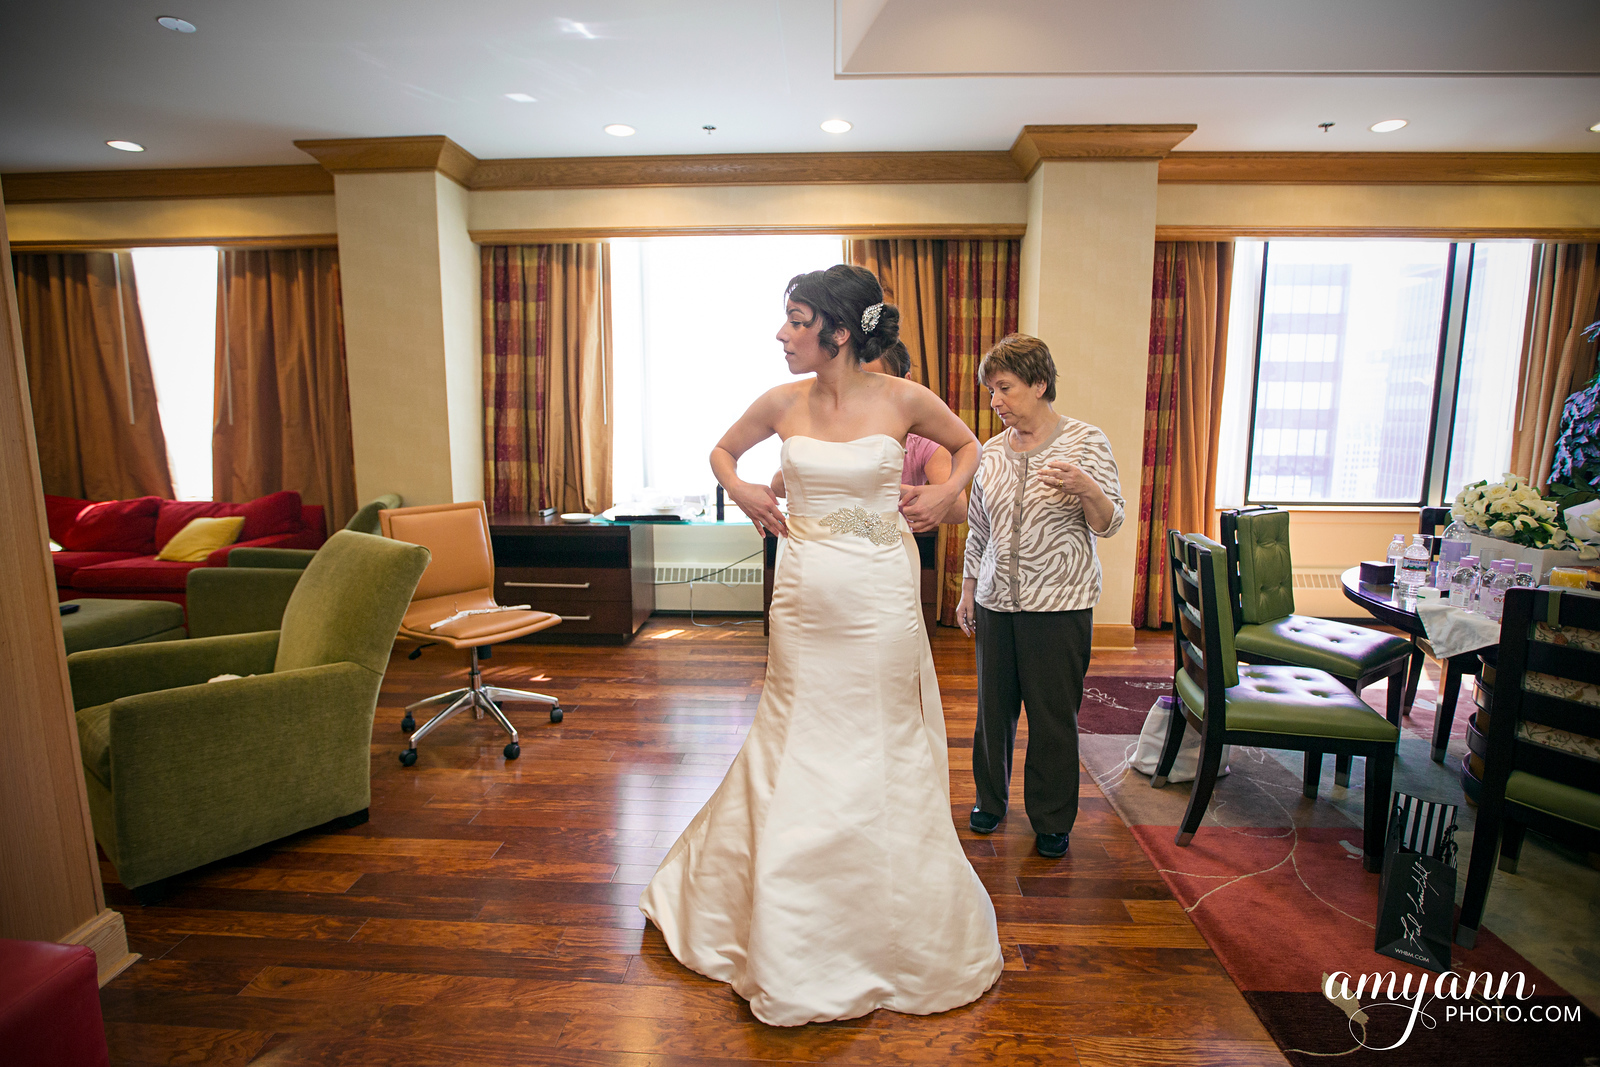 reneeleo_wedding_006